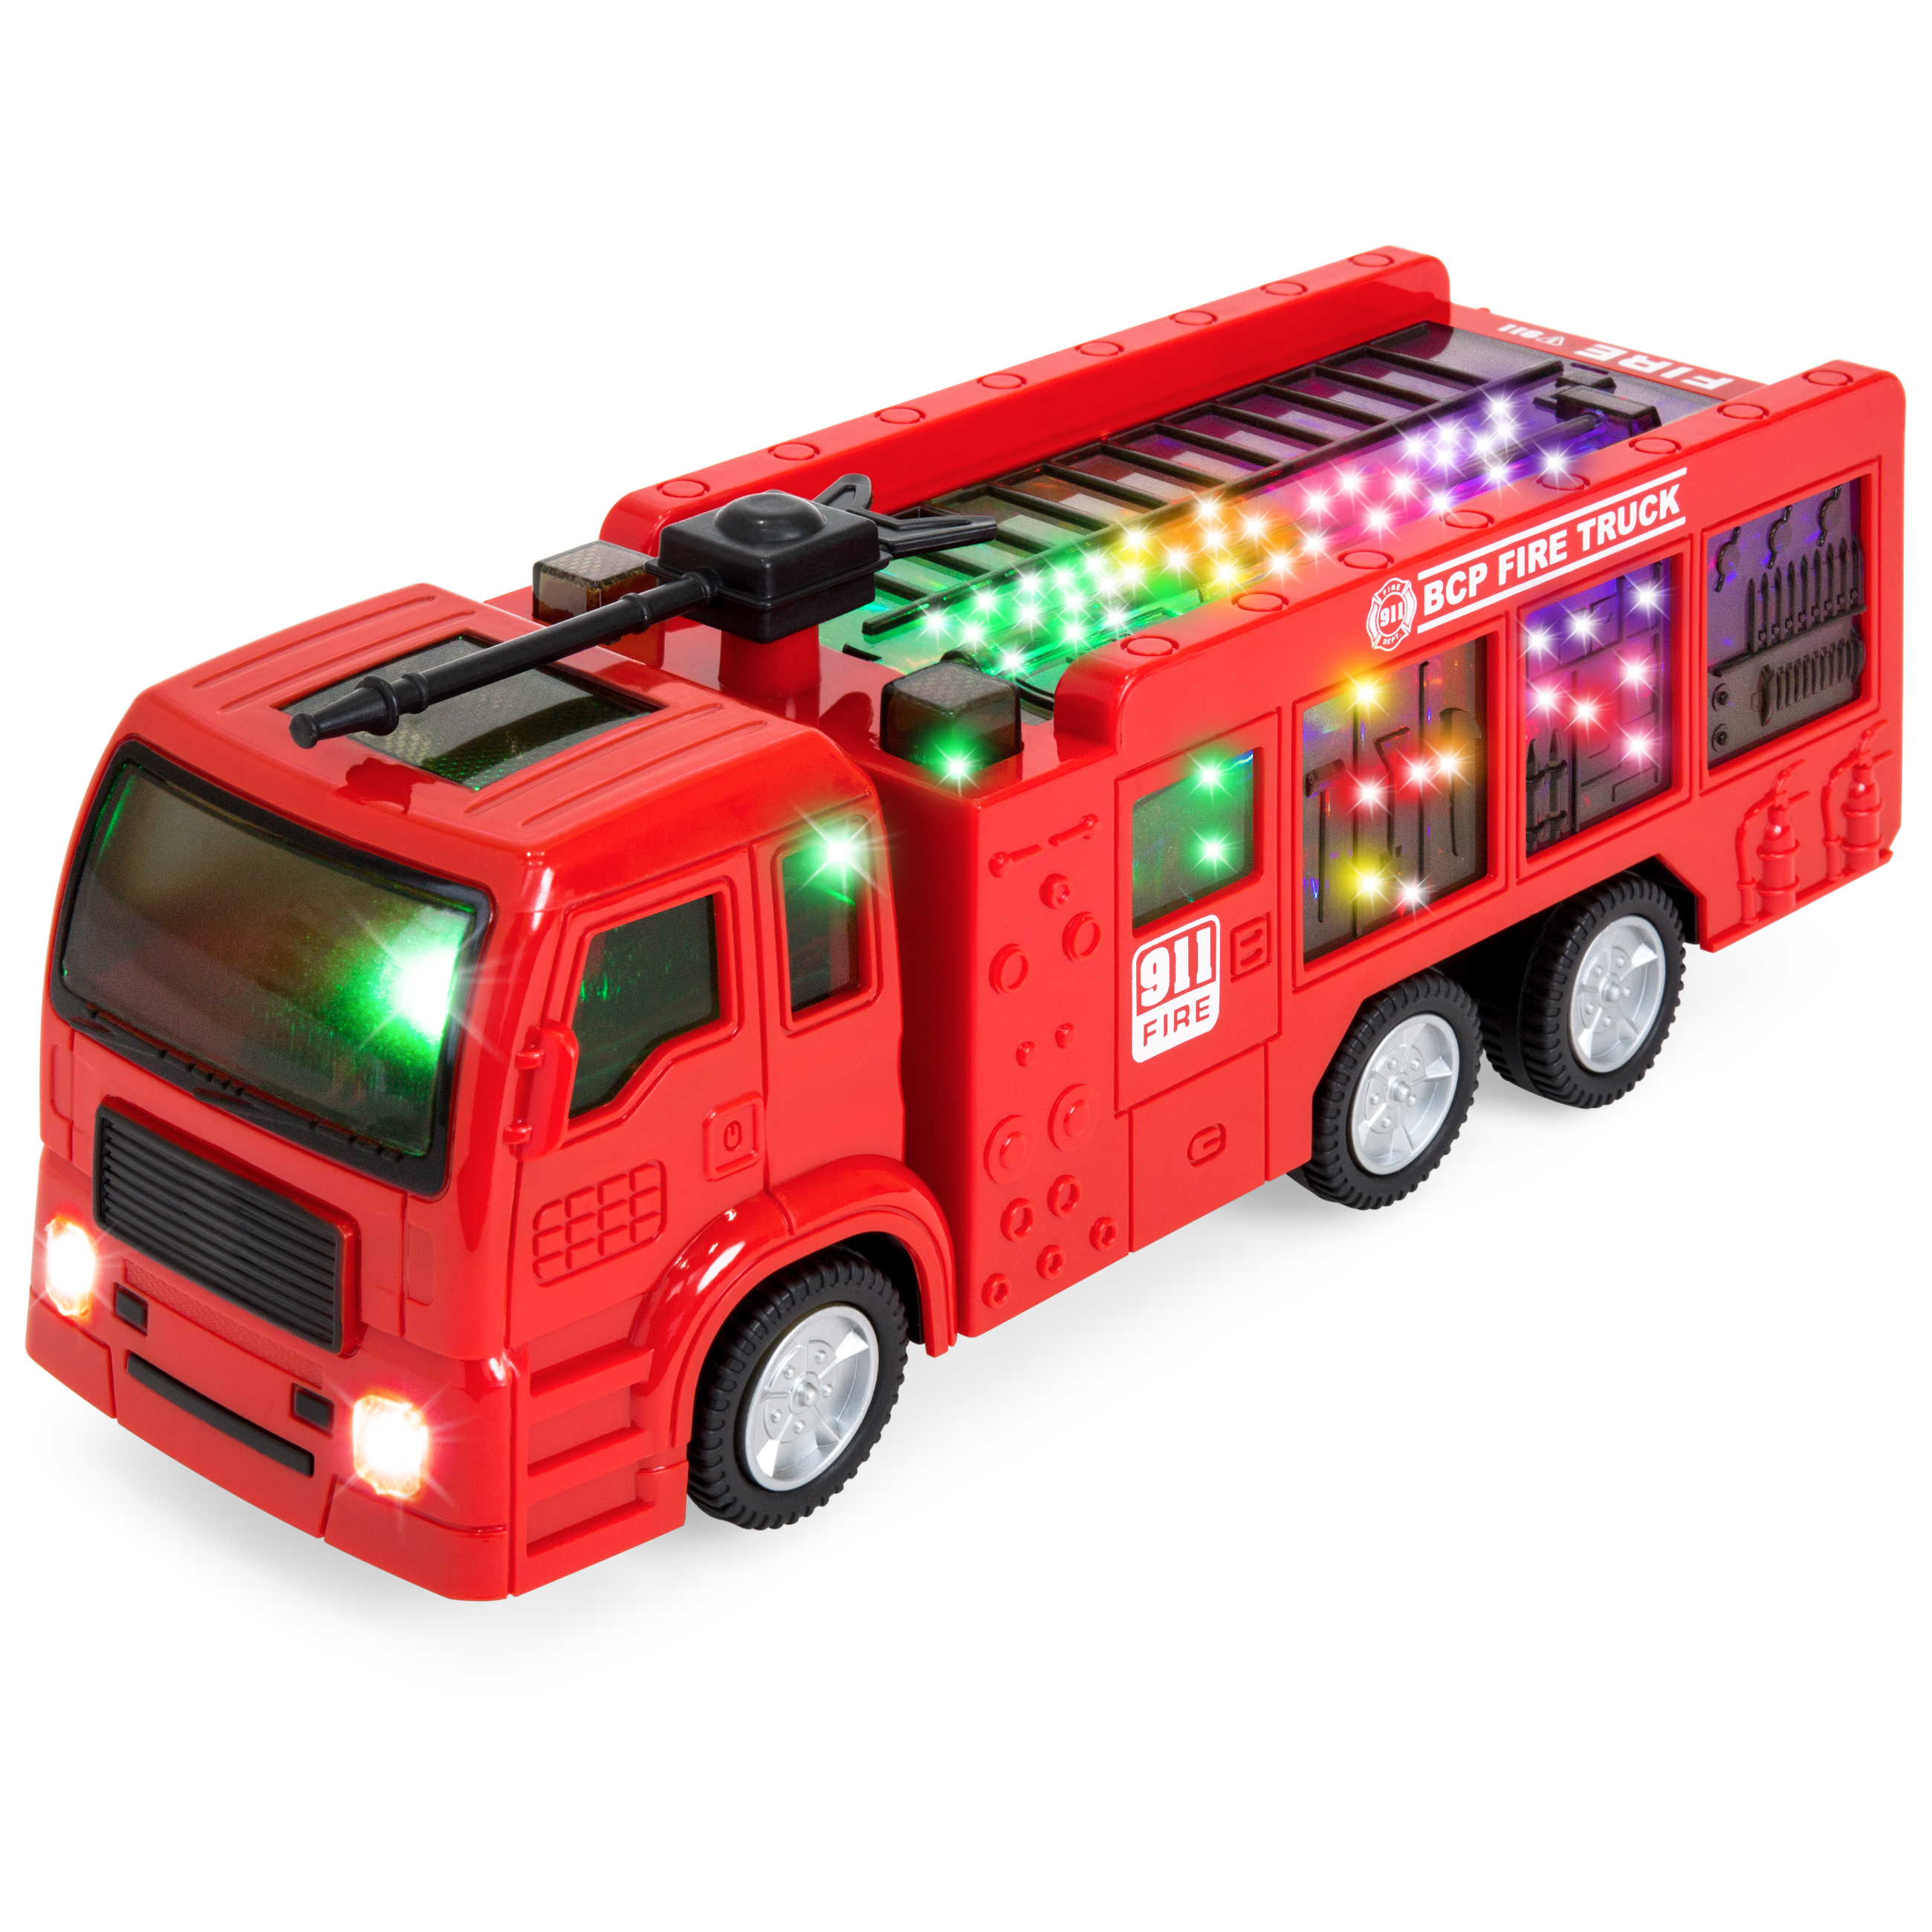 Best Choice Products Toy Fire Truck Electric Flashing Lights and Siren Sound, Bump and Go Action